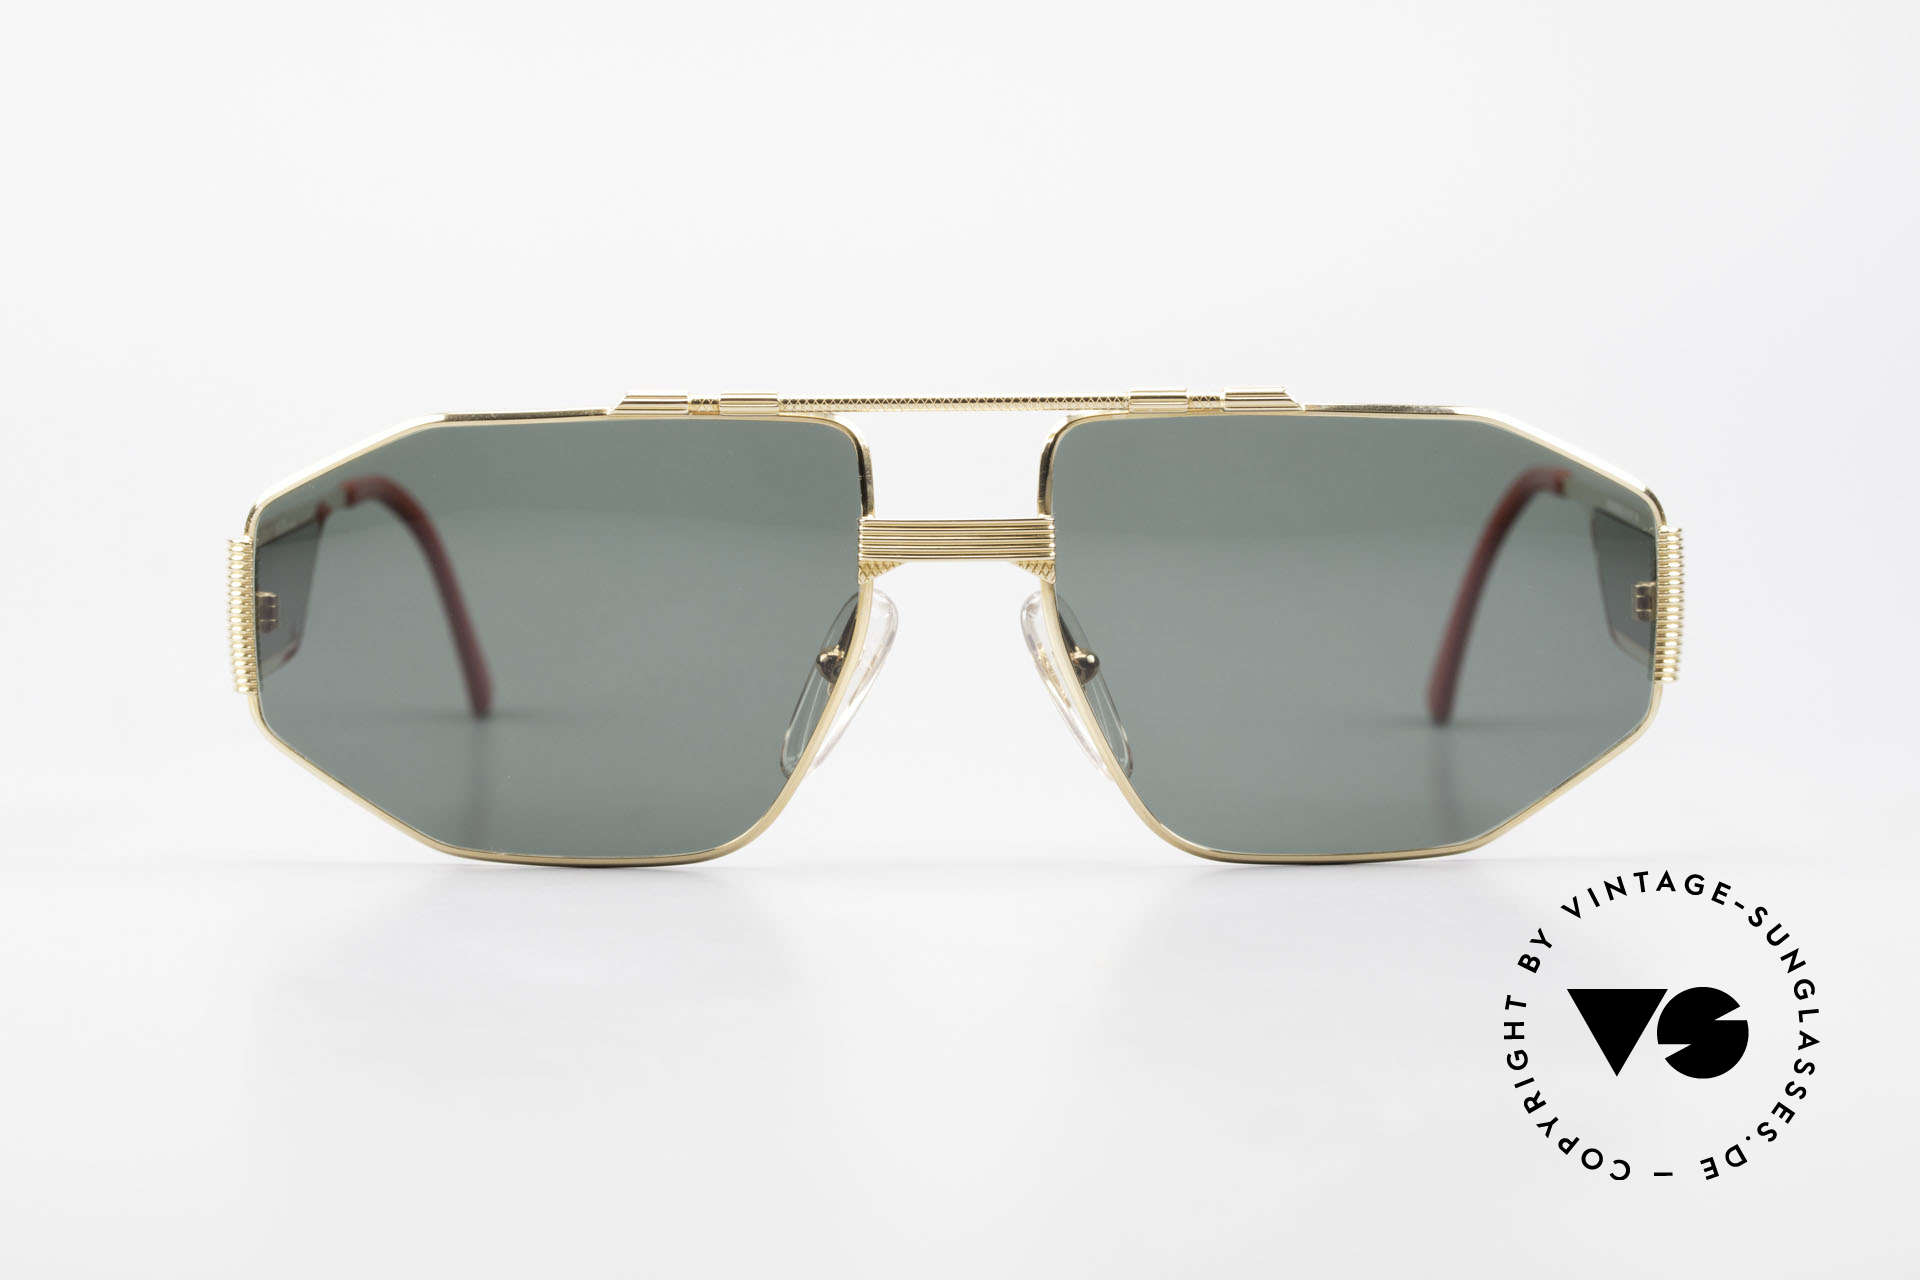 Christian Dior 2427 Dior Monsieur 80's Sunglasses, extraordinary temple design; just striking and unique!, Made for Men